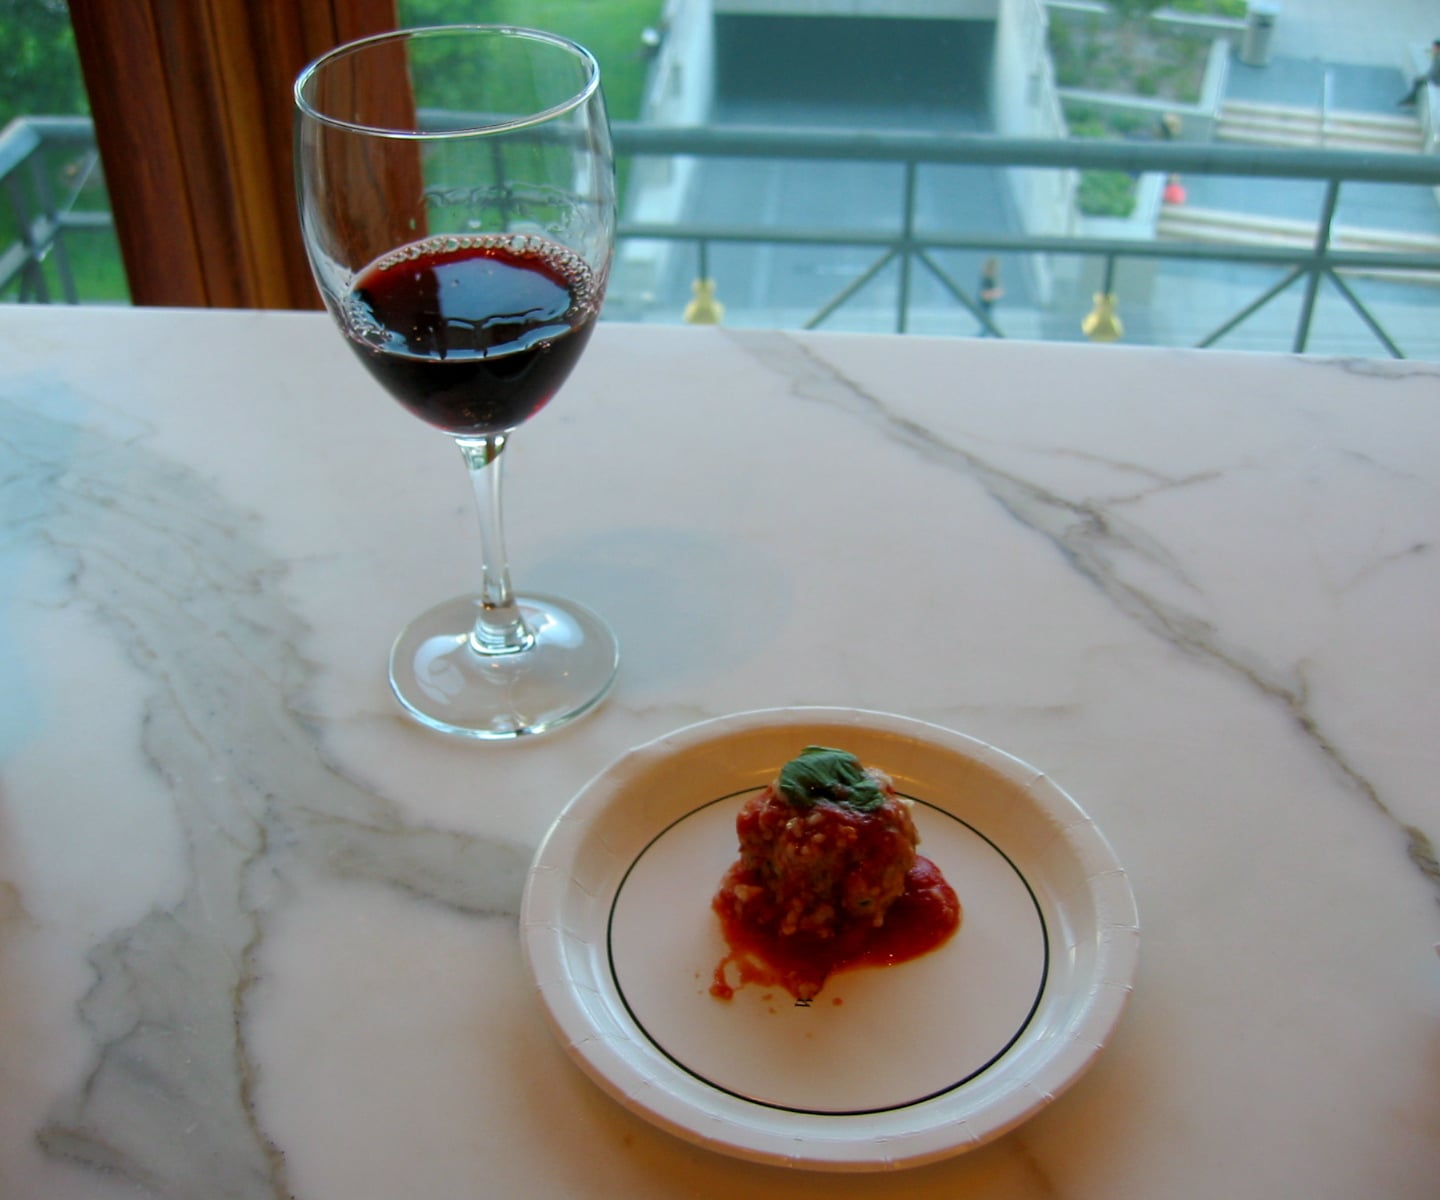 The meatballs were paired with aglianico, an earthy, spicy red popular in Campania, Italy.